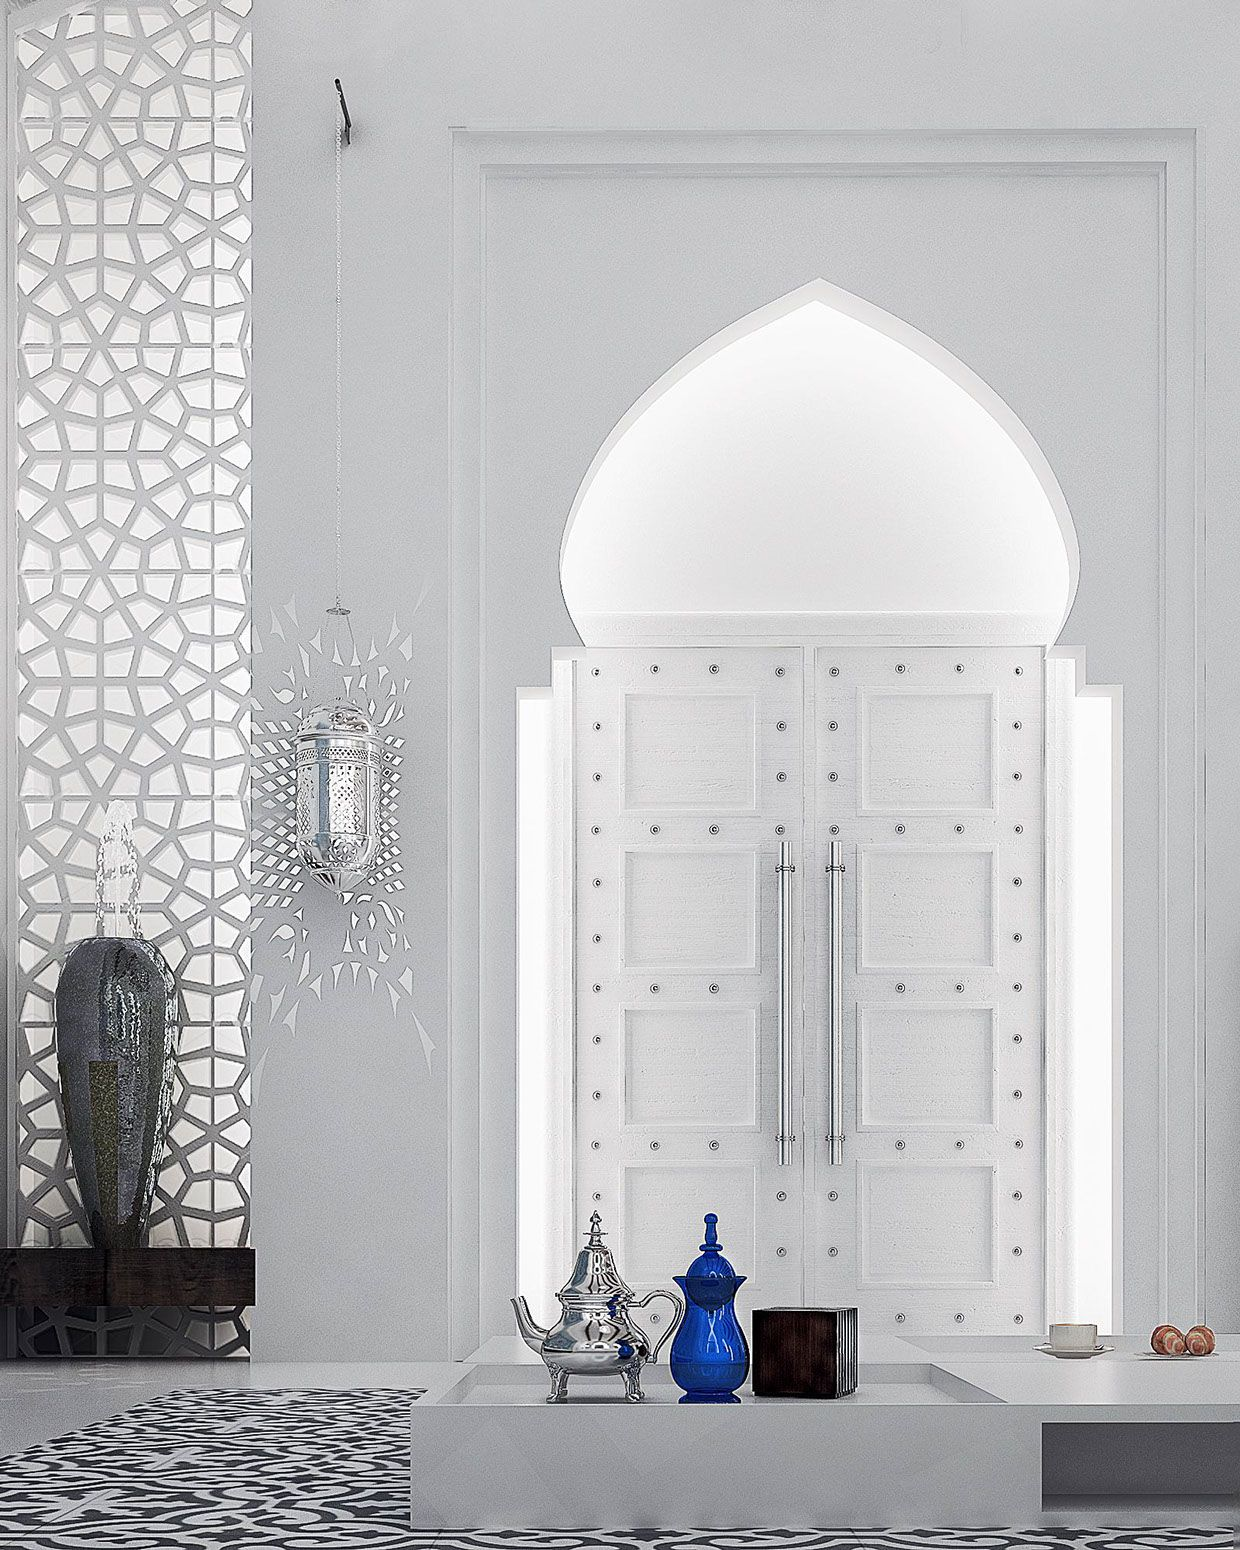 The horseshoe arches are extremely common in moroccan design and are characterized by a large round arch atop a straighter narrower doorway or in this